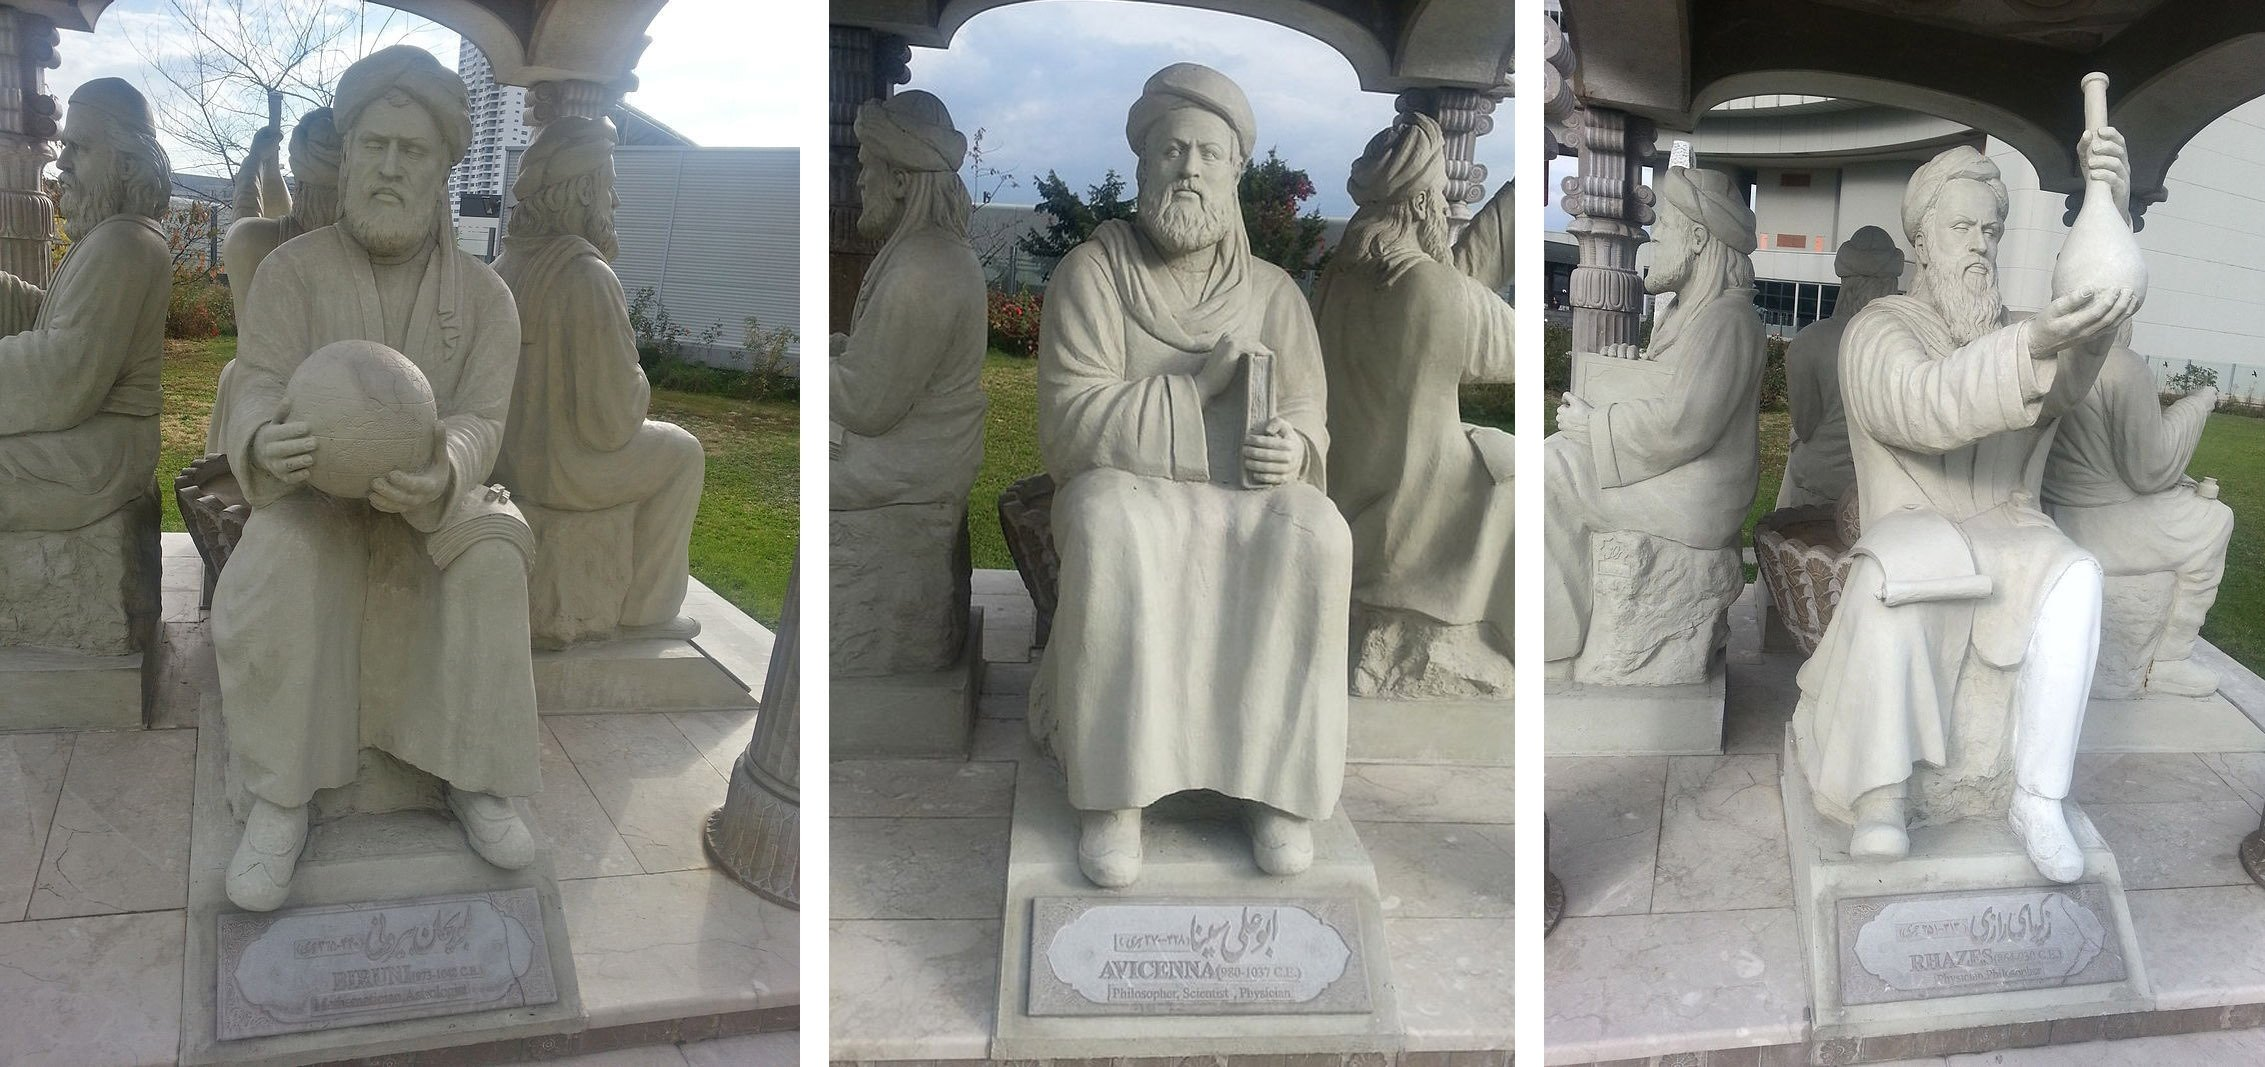 From left to right, the statues of Al-Biruni, Ibn Sina and Al-Razi in the Scholars Pavilion at the United Nations Office, Vienna, Austria.